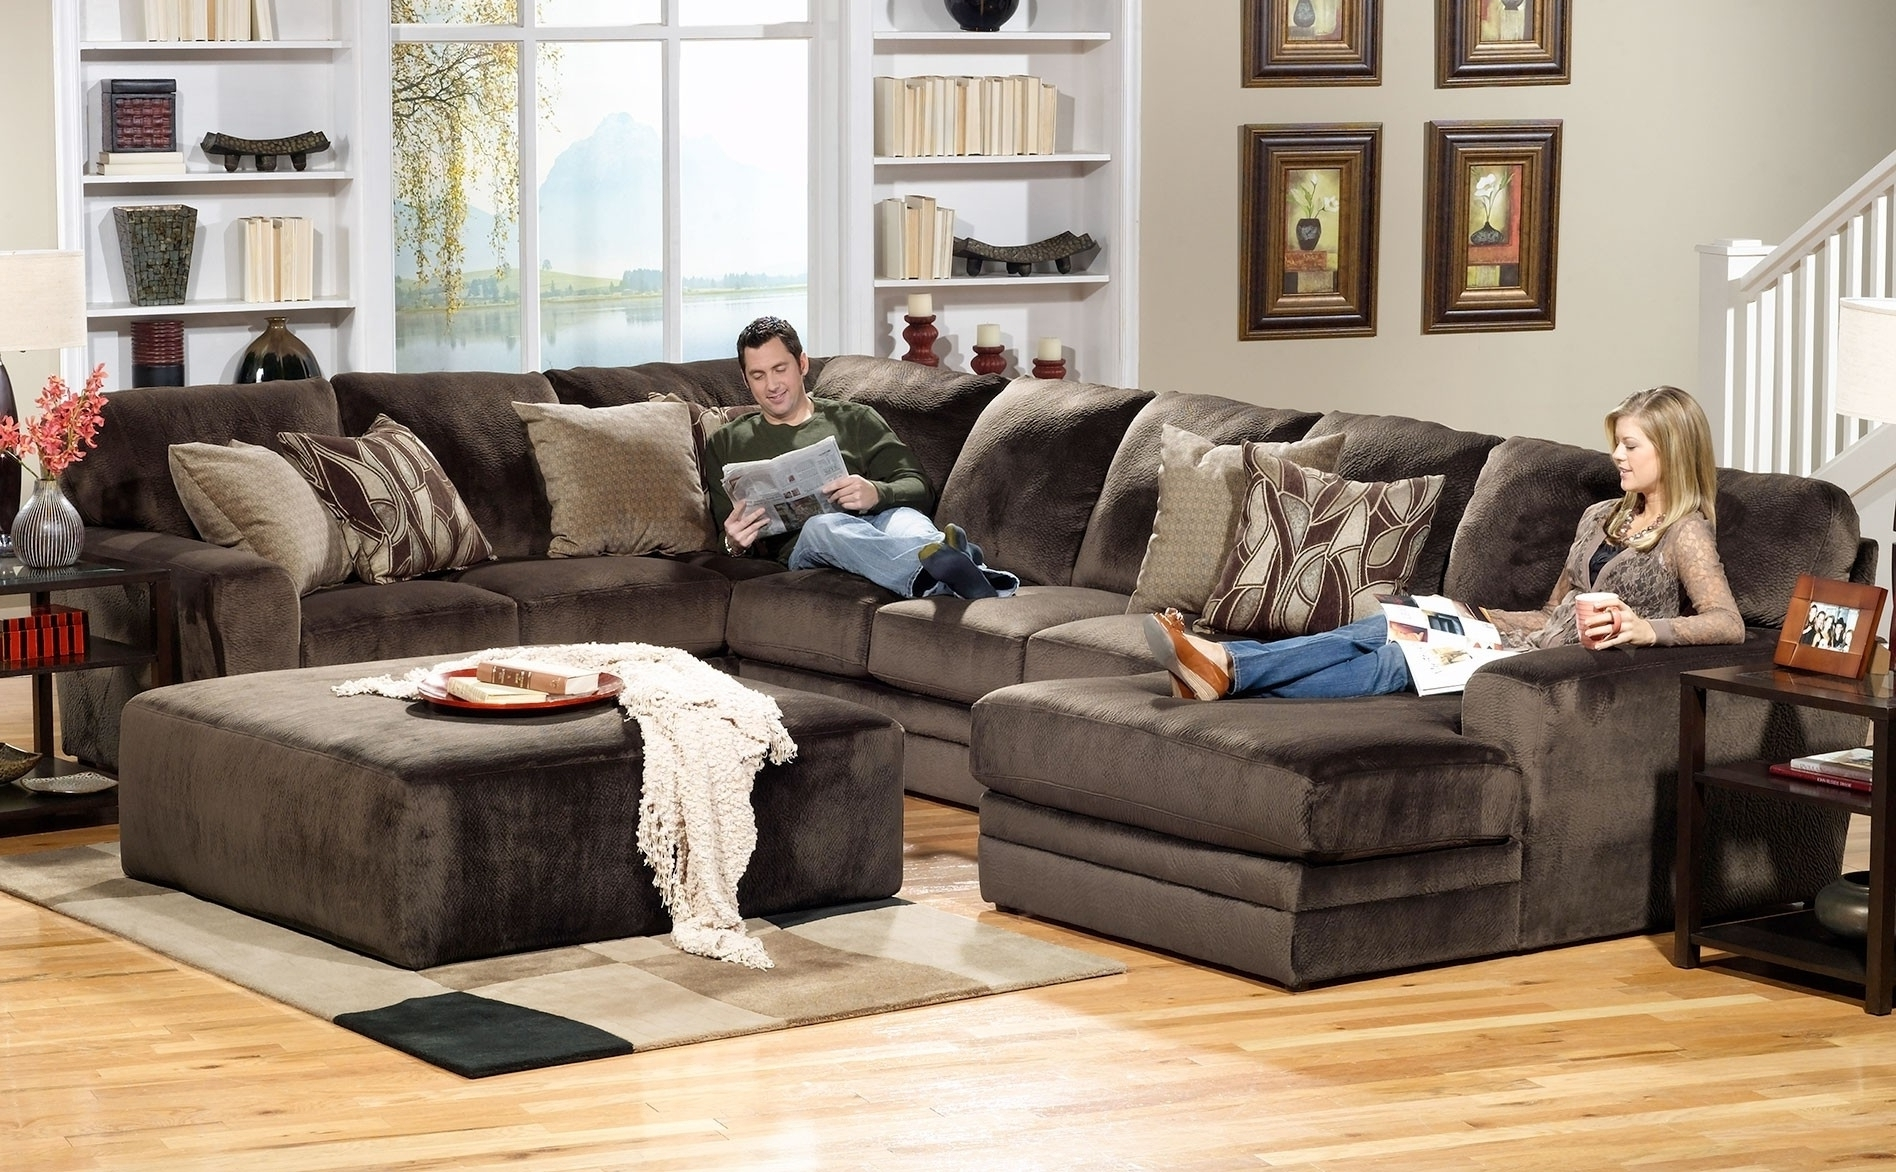 Clarksville Tn Sectional Sofas In Famous Furniture: Harbor Freight Furniture (View 4 of 15)